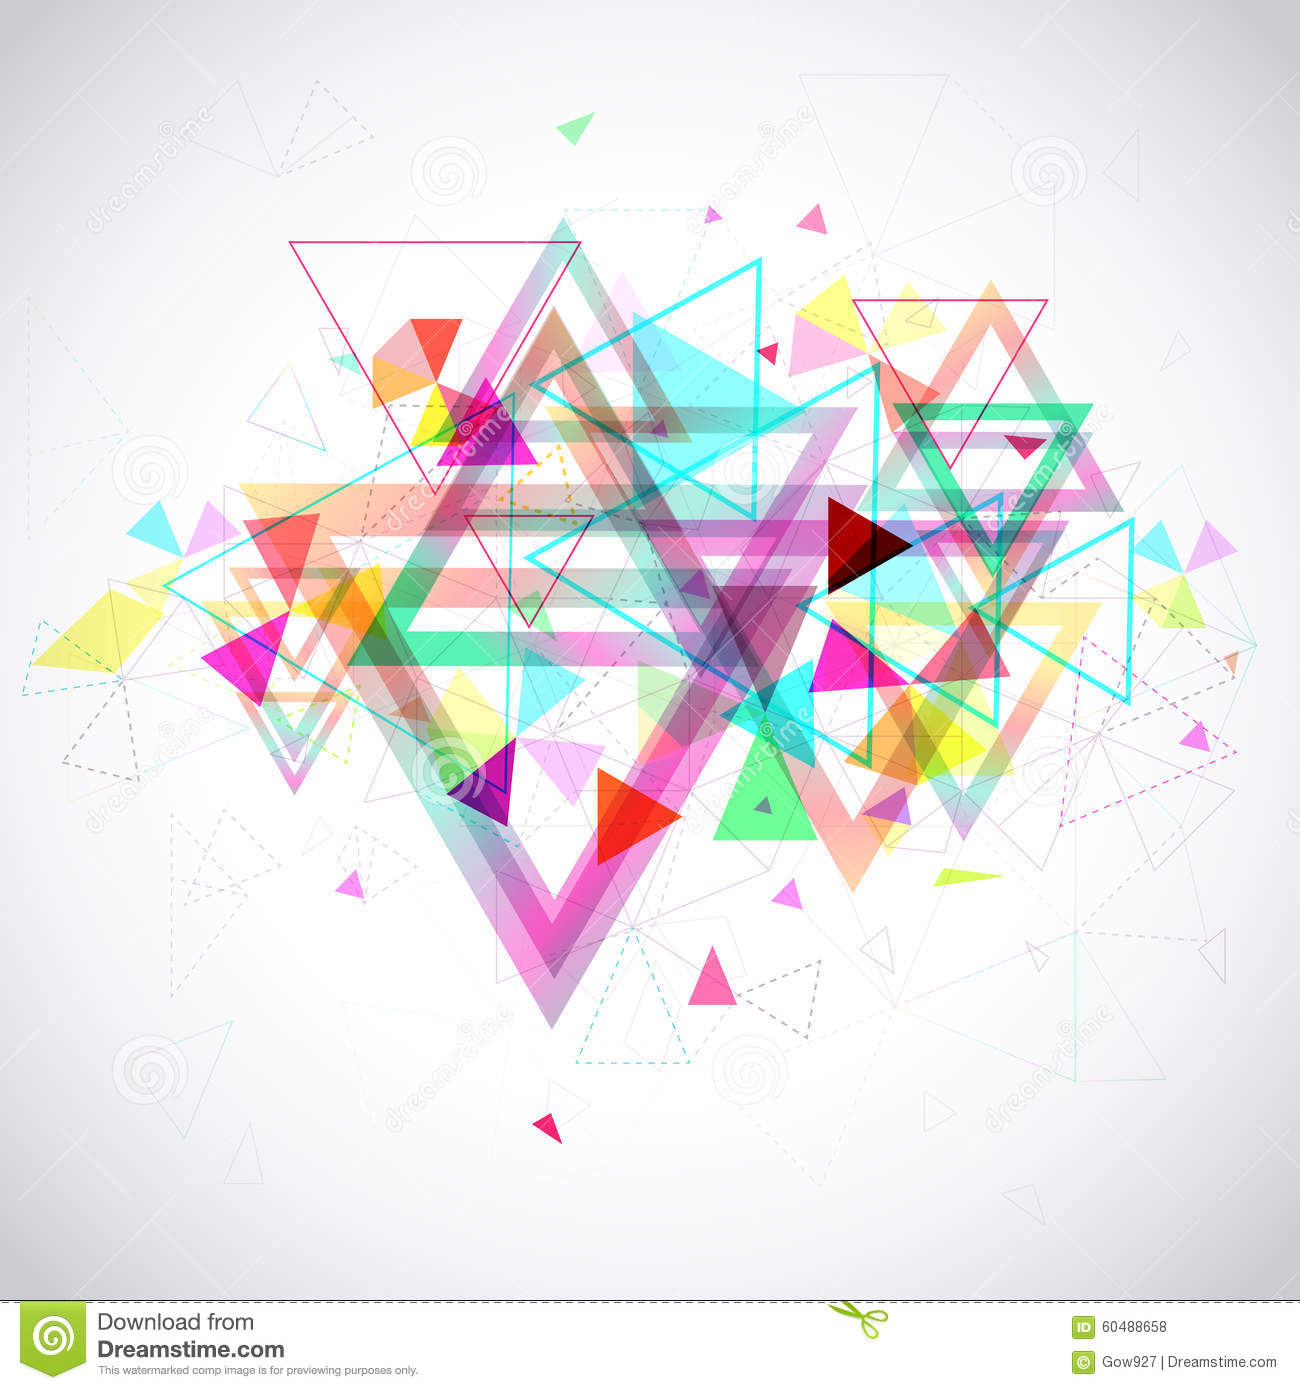 polygon shape abstract design - photo #3